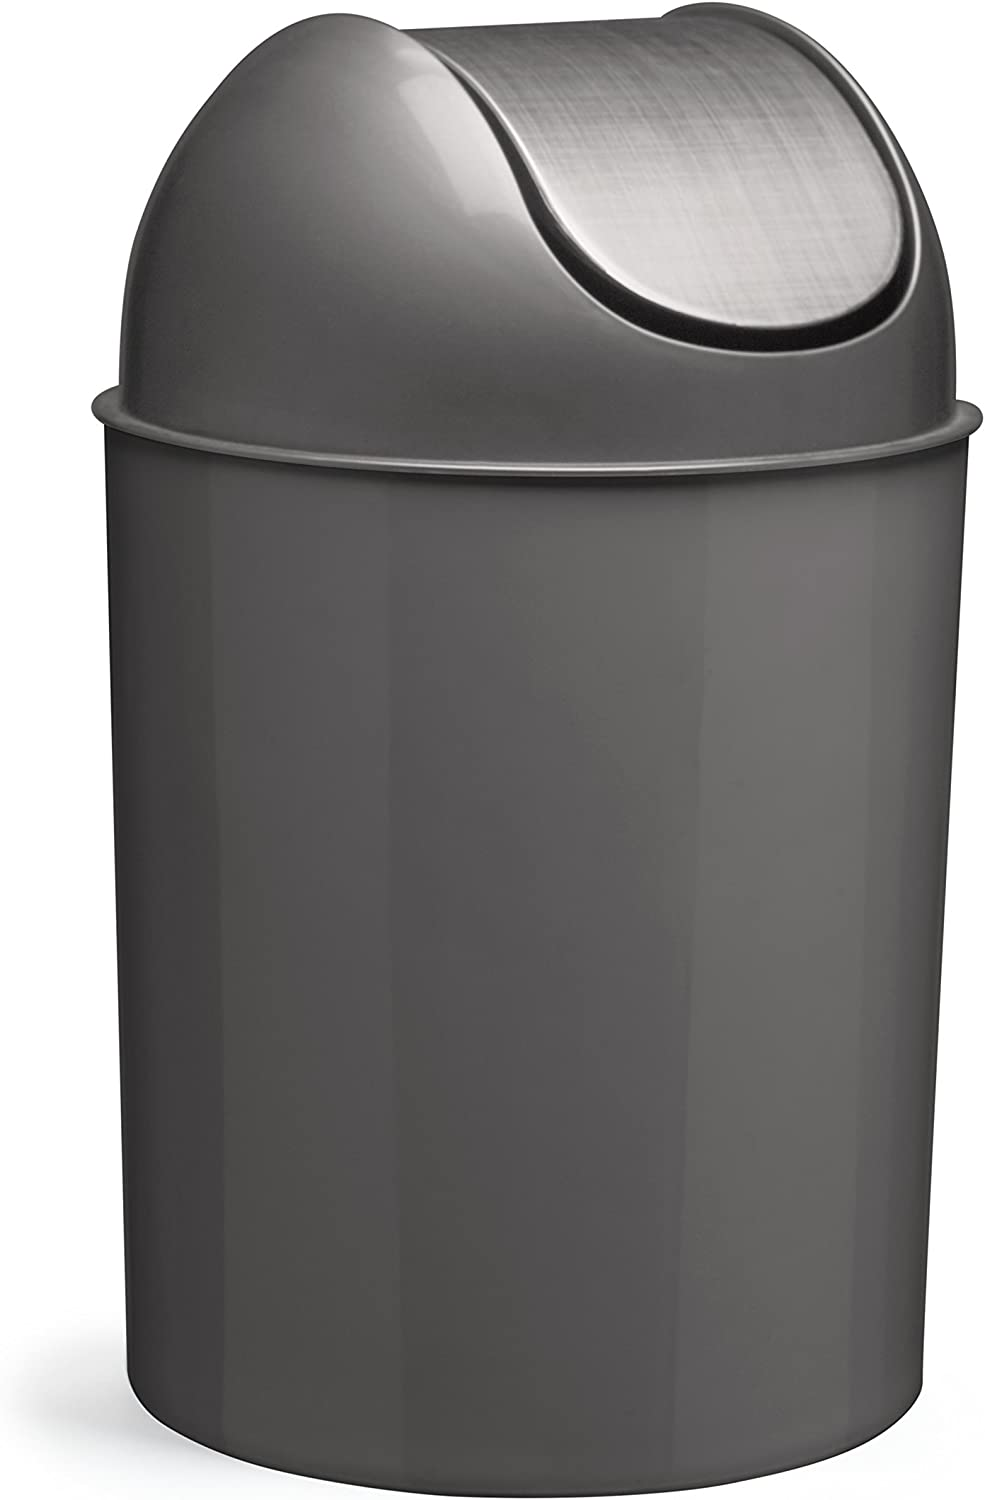 Umbra Mezzo, 2.5 Gallon Trash Can with Lid, Ideal For Small Spaces, Home and Office, Brushed Silver